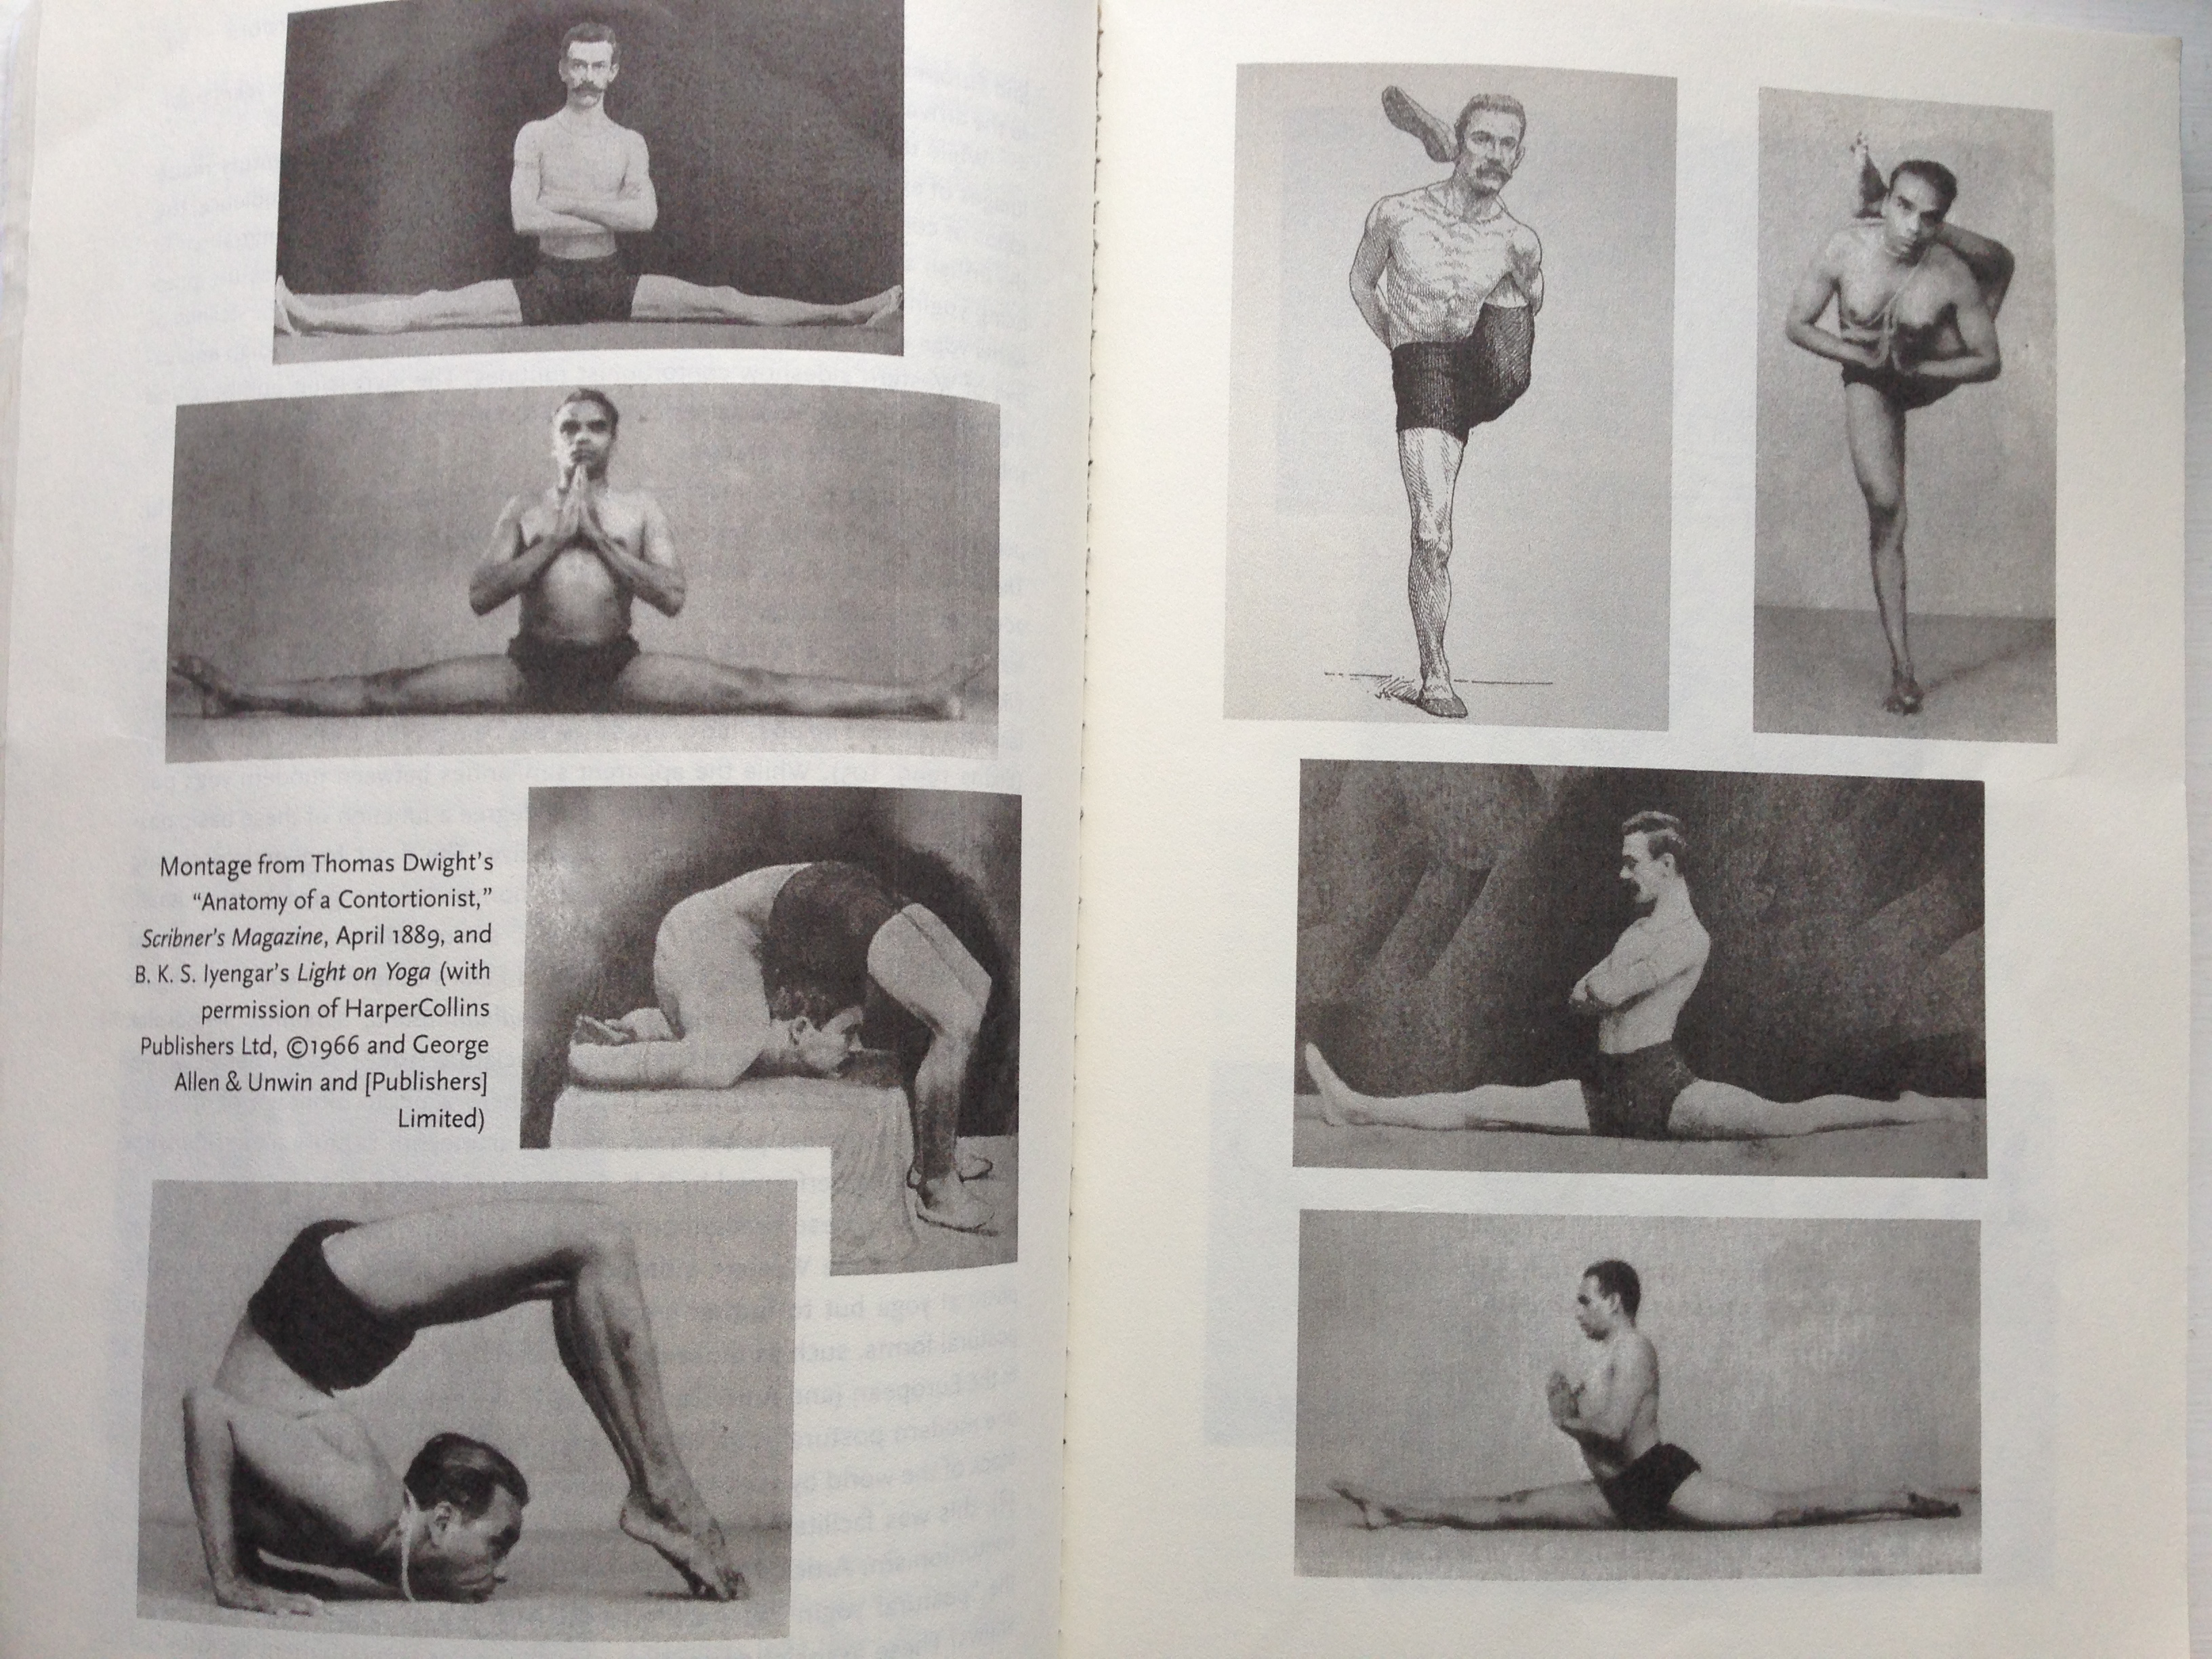 The similarity between the postures taken on by a 19th century contortionist and B.K.S. Iyengar's asanas in 'Light on Yoga'.